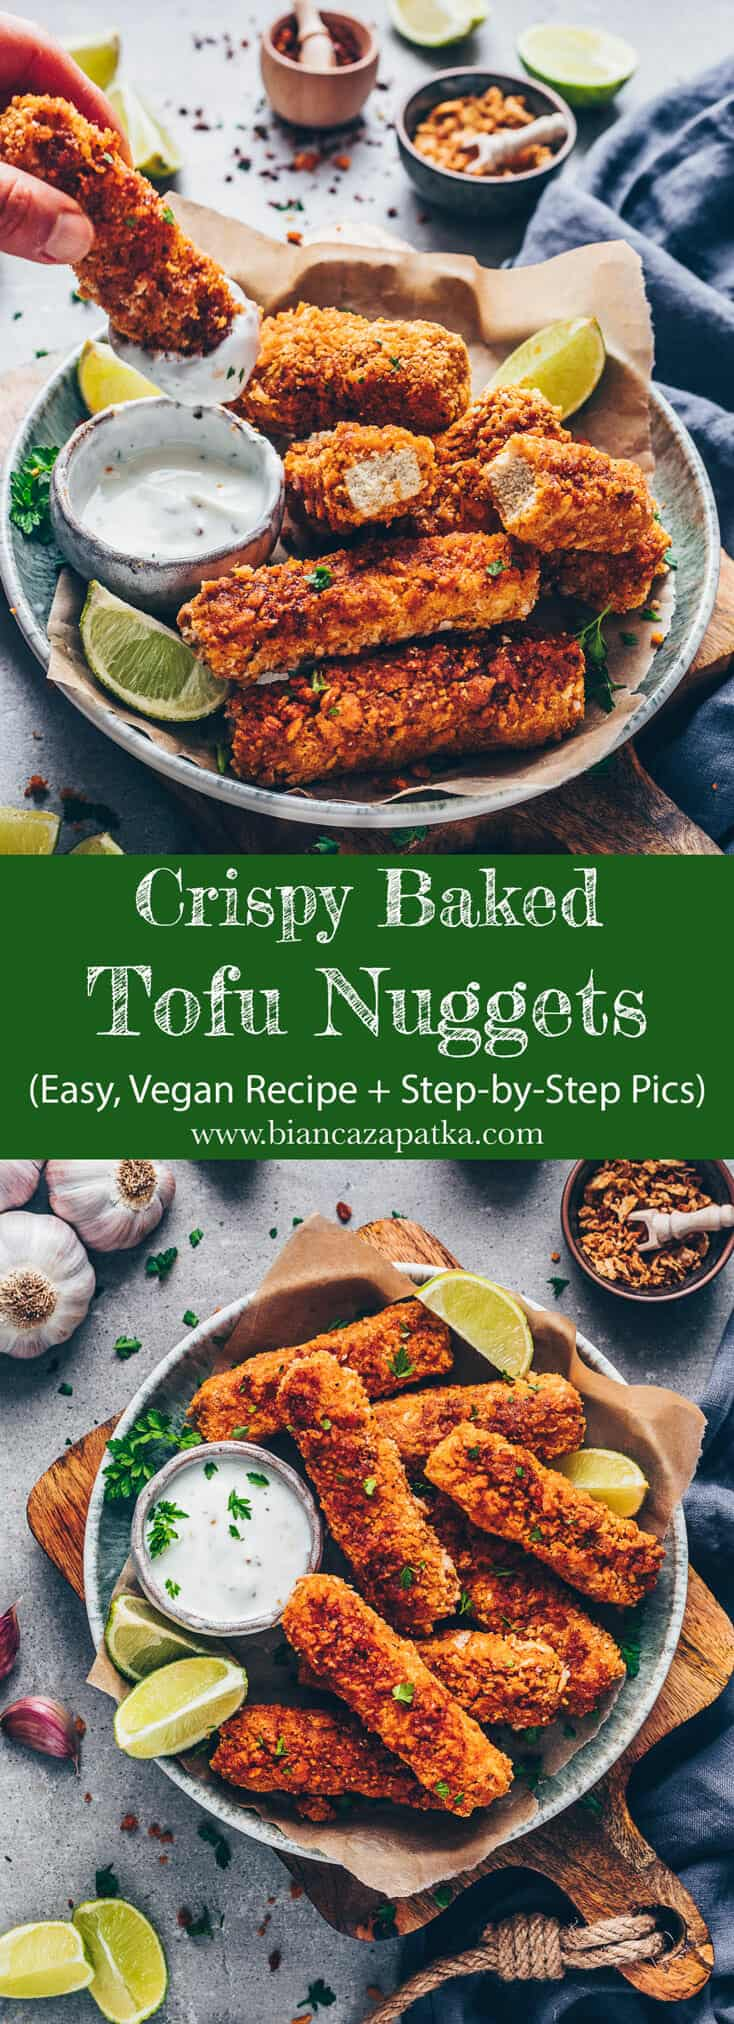 Crispy Baked Tofu Nuggets. Meatless chicken fingers and buffalo barbecue sauce. Easy vegan chicken nuggets recipe.